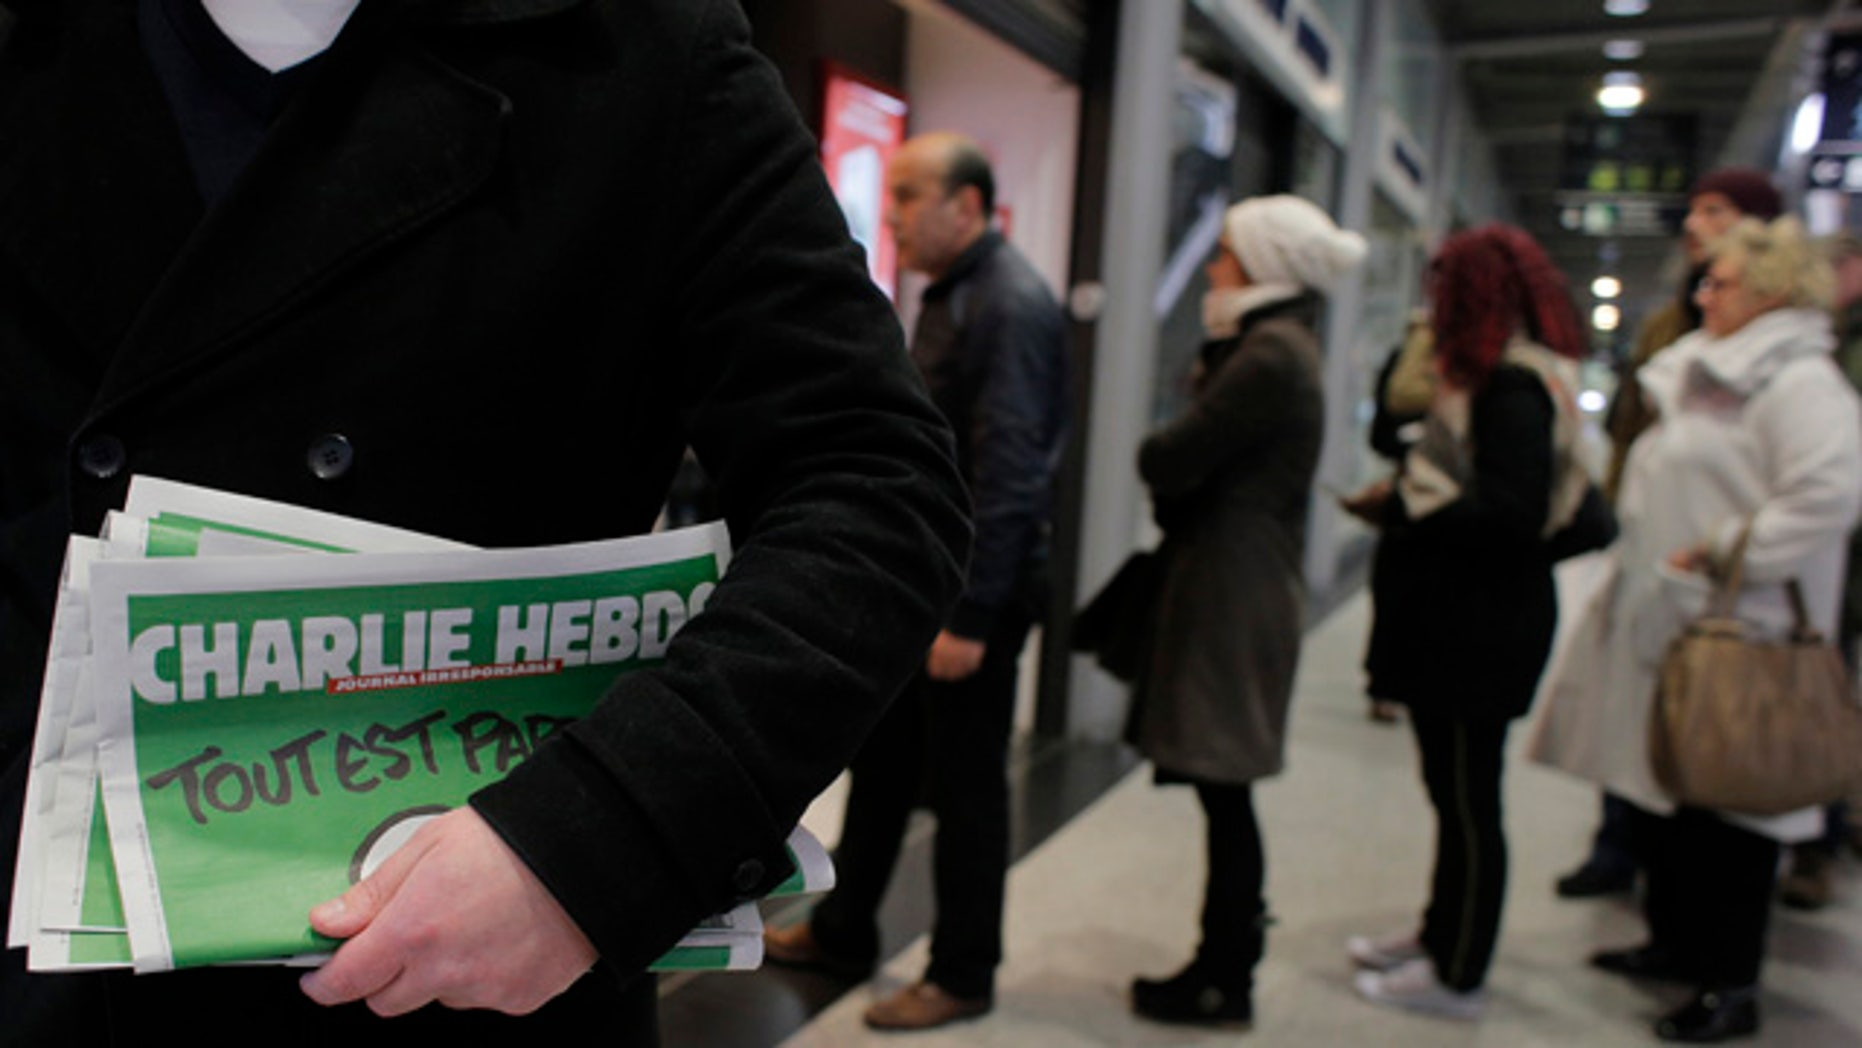 Jan. 14, 2015: A man leaves after buying Charlie Hebdo newspapers as people queue at a newsstand in Paris. (AP Photo/Christophe Ena)